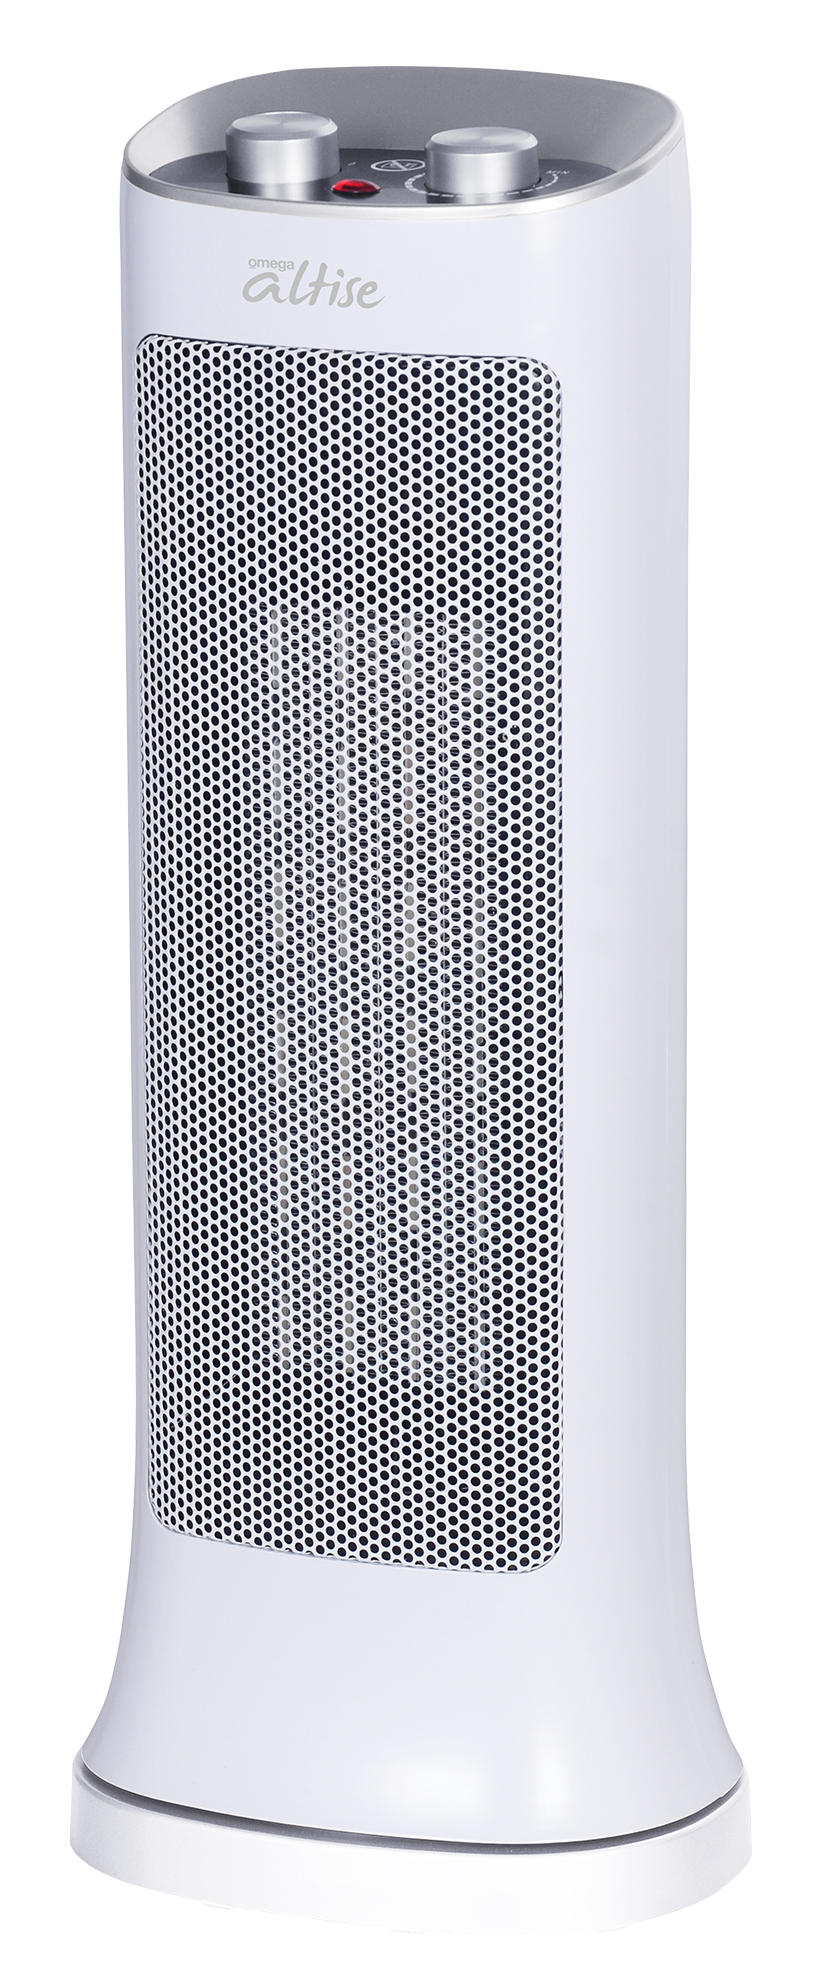 Omega Altise product 2000W Ceramic Tower Heater - White OACHT2000